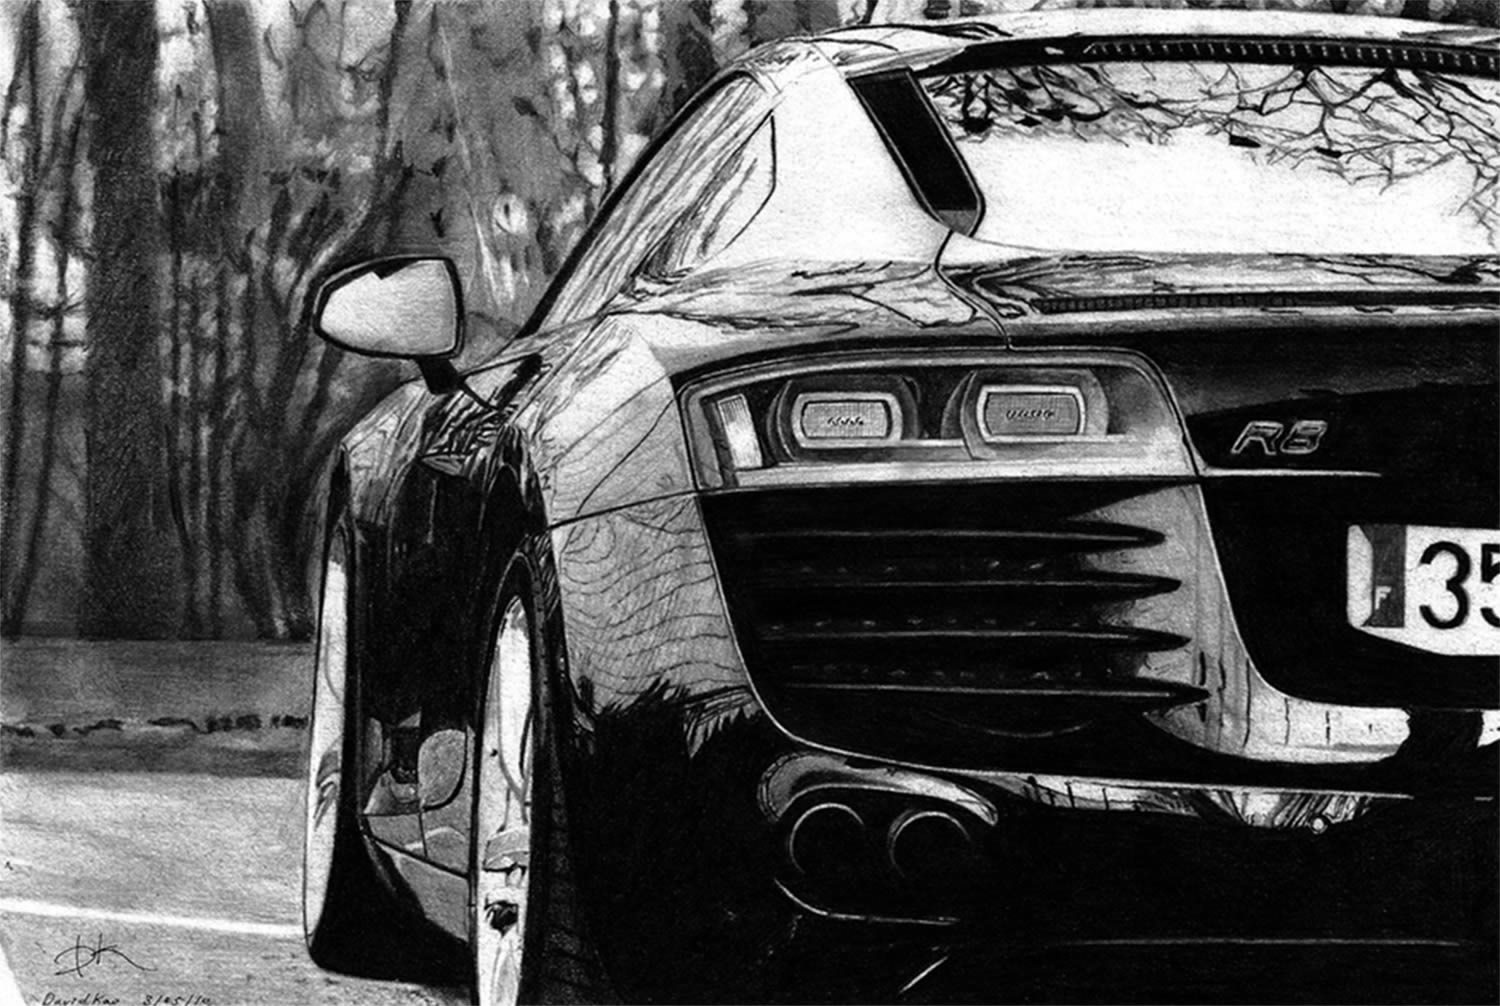 david kao pencil drawing car